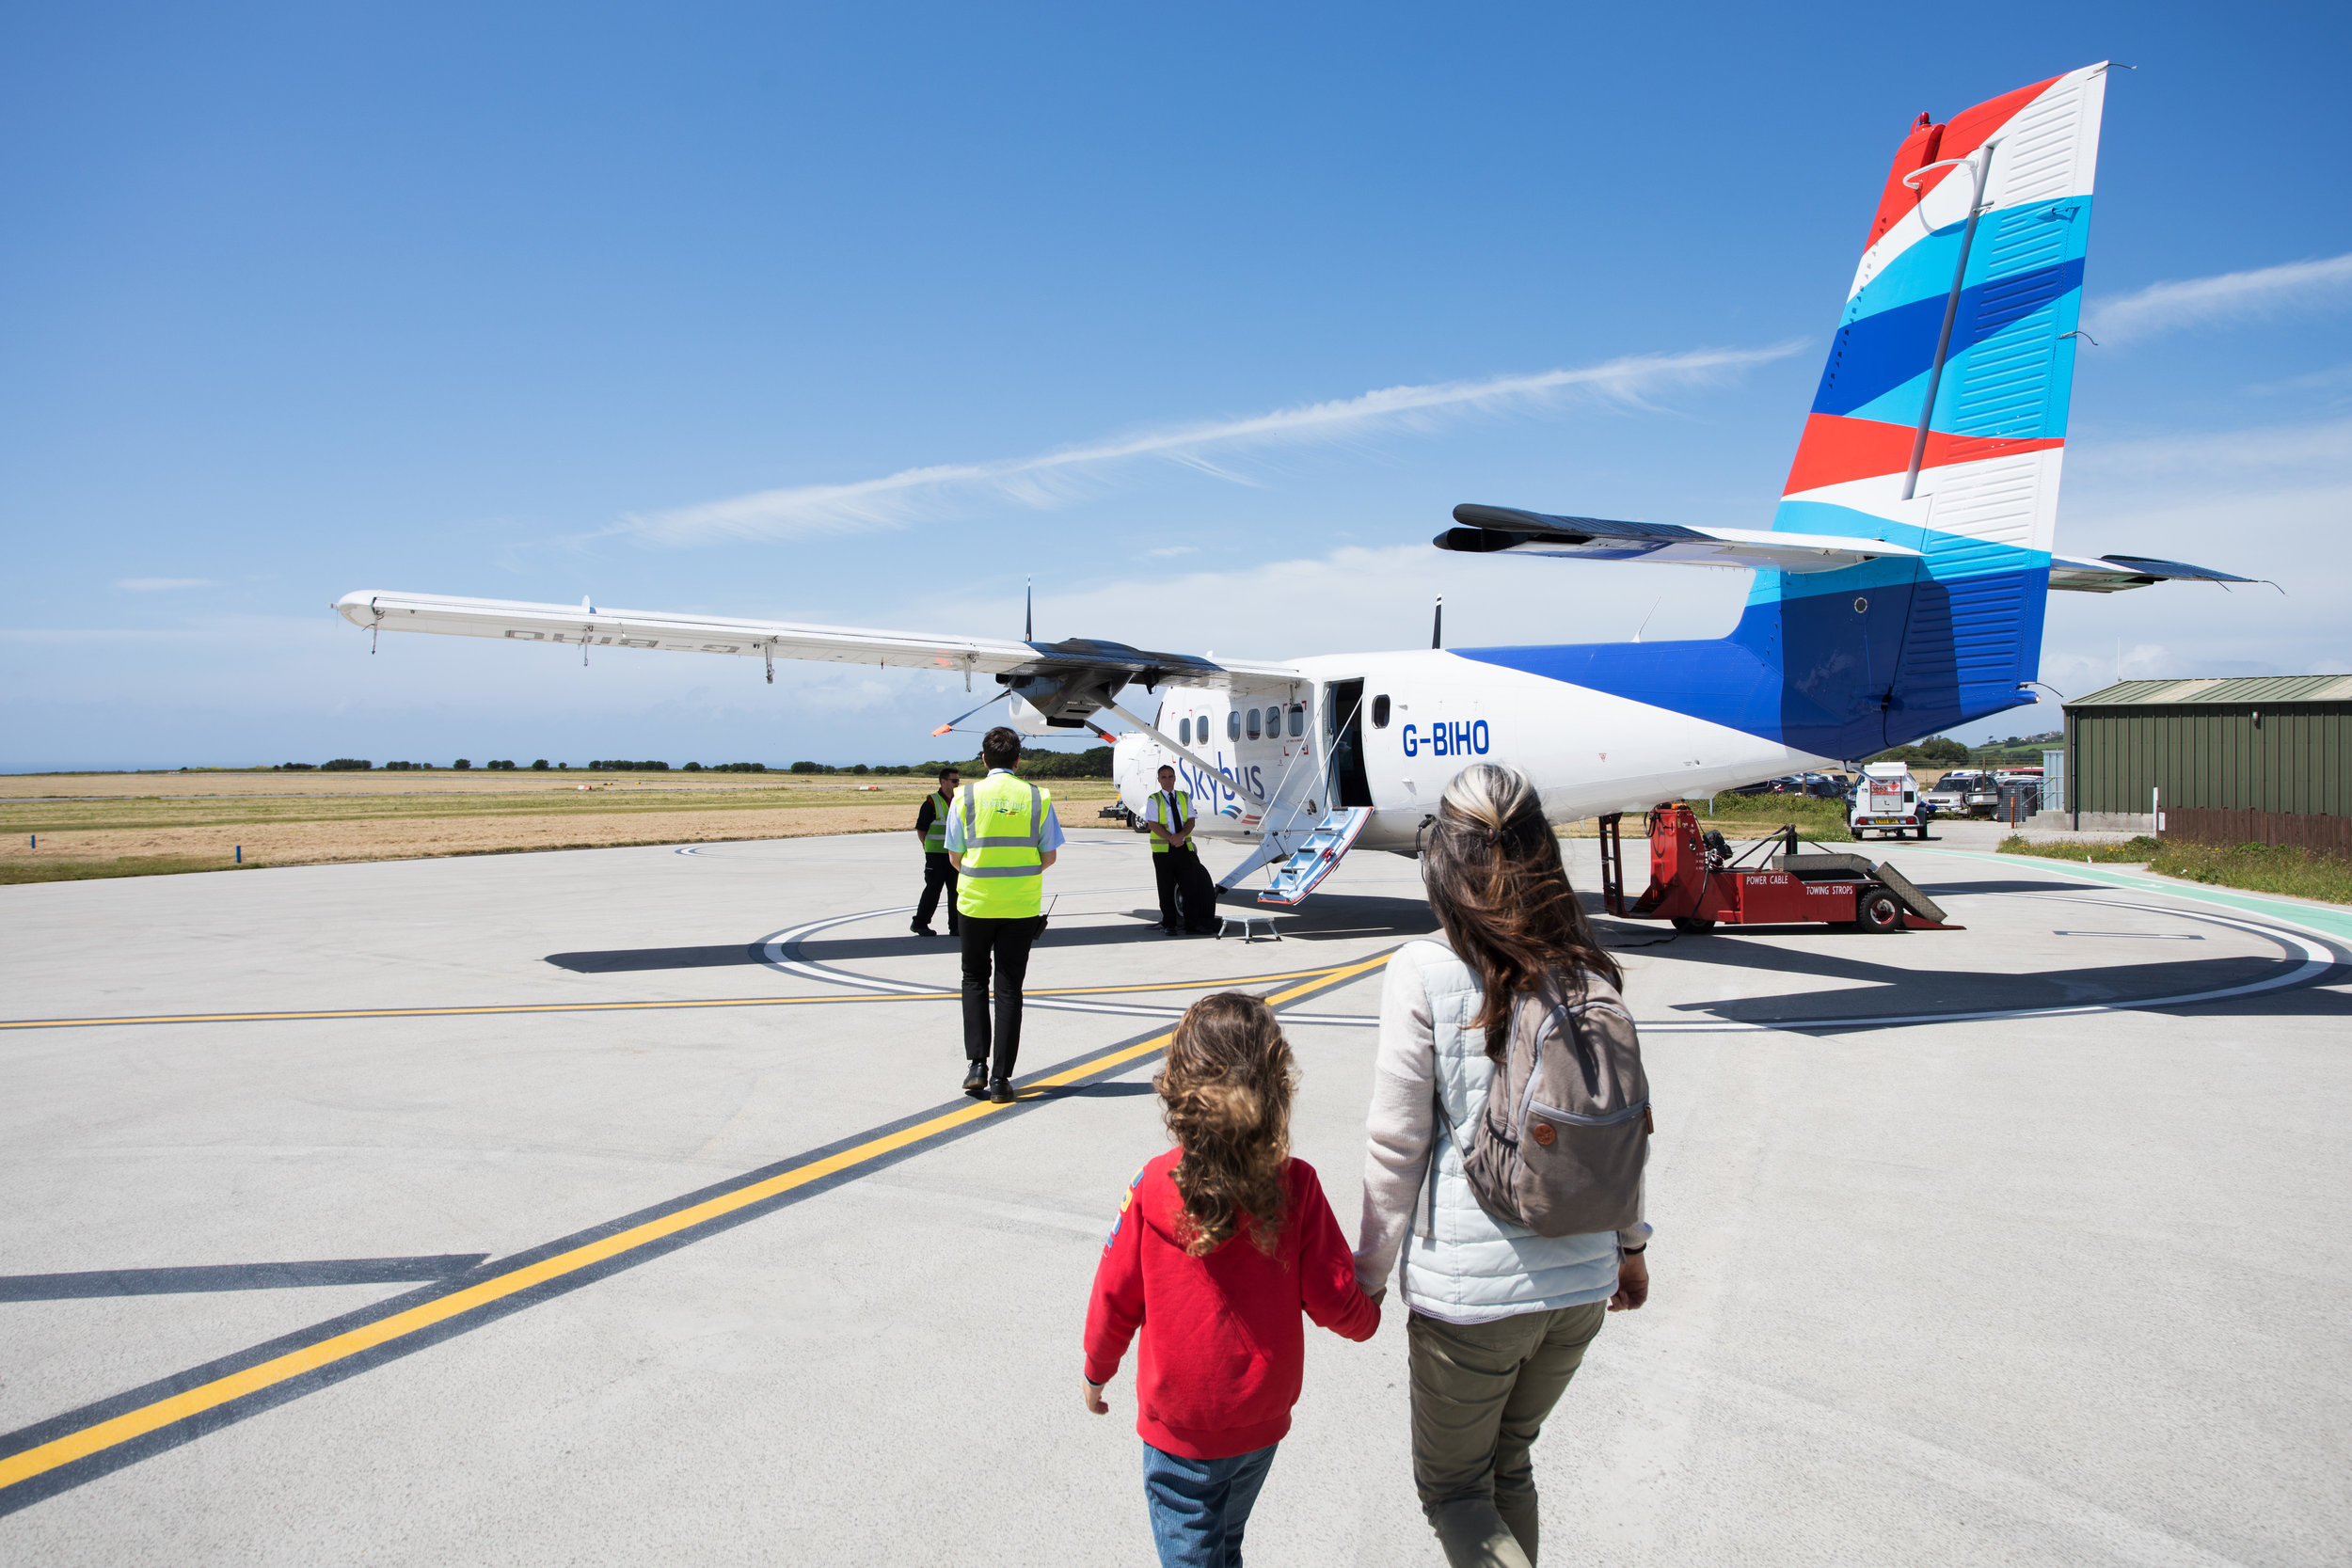 Passengers making their way out to a Skybus Twin Otter aircraft.